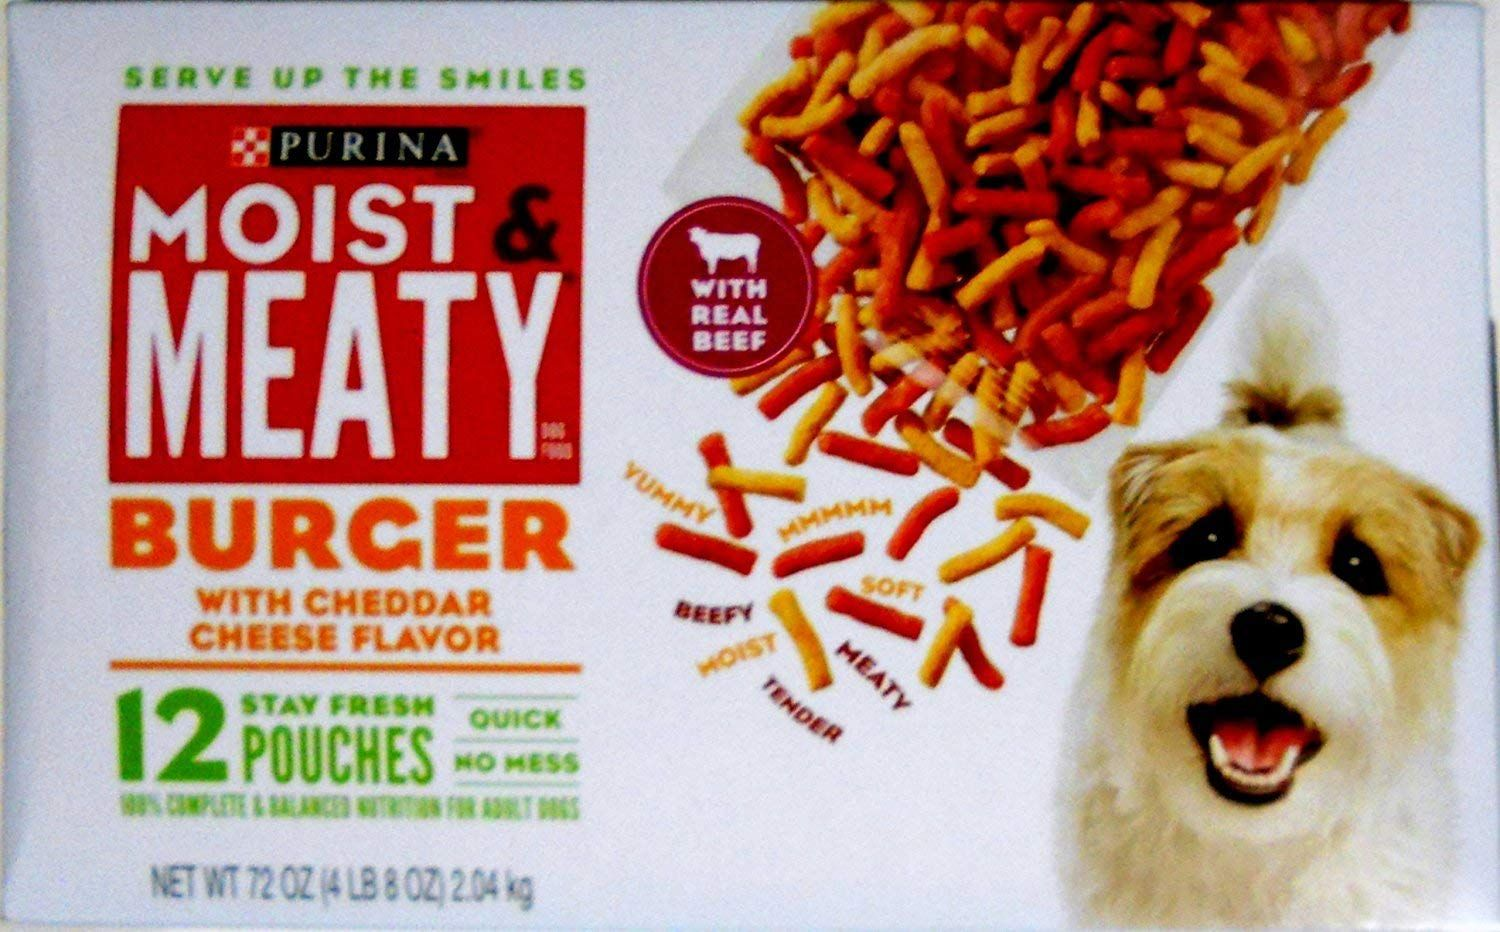 Purina Moist And Meaty Burger With Cheddar Cheese Flavor Dog Food